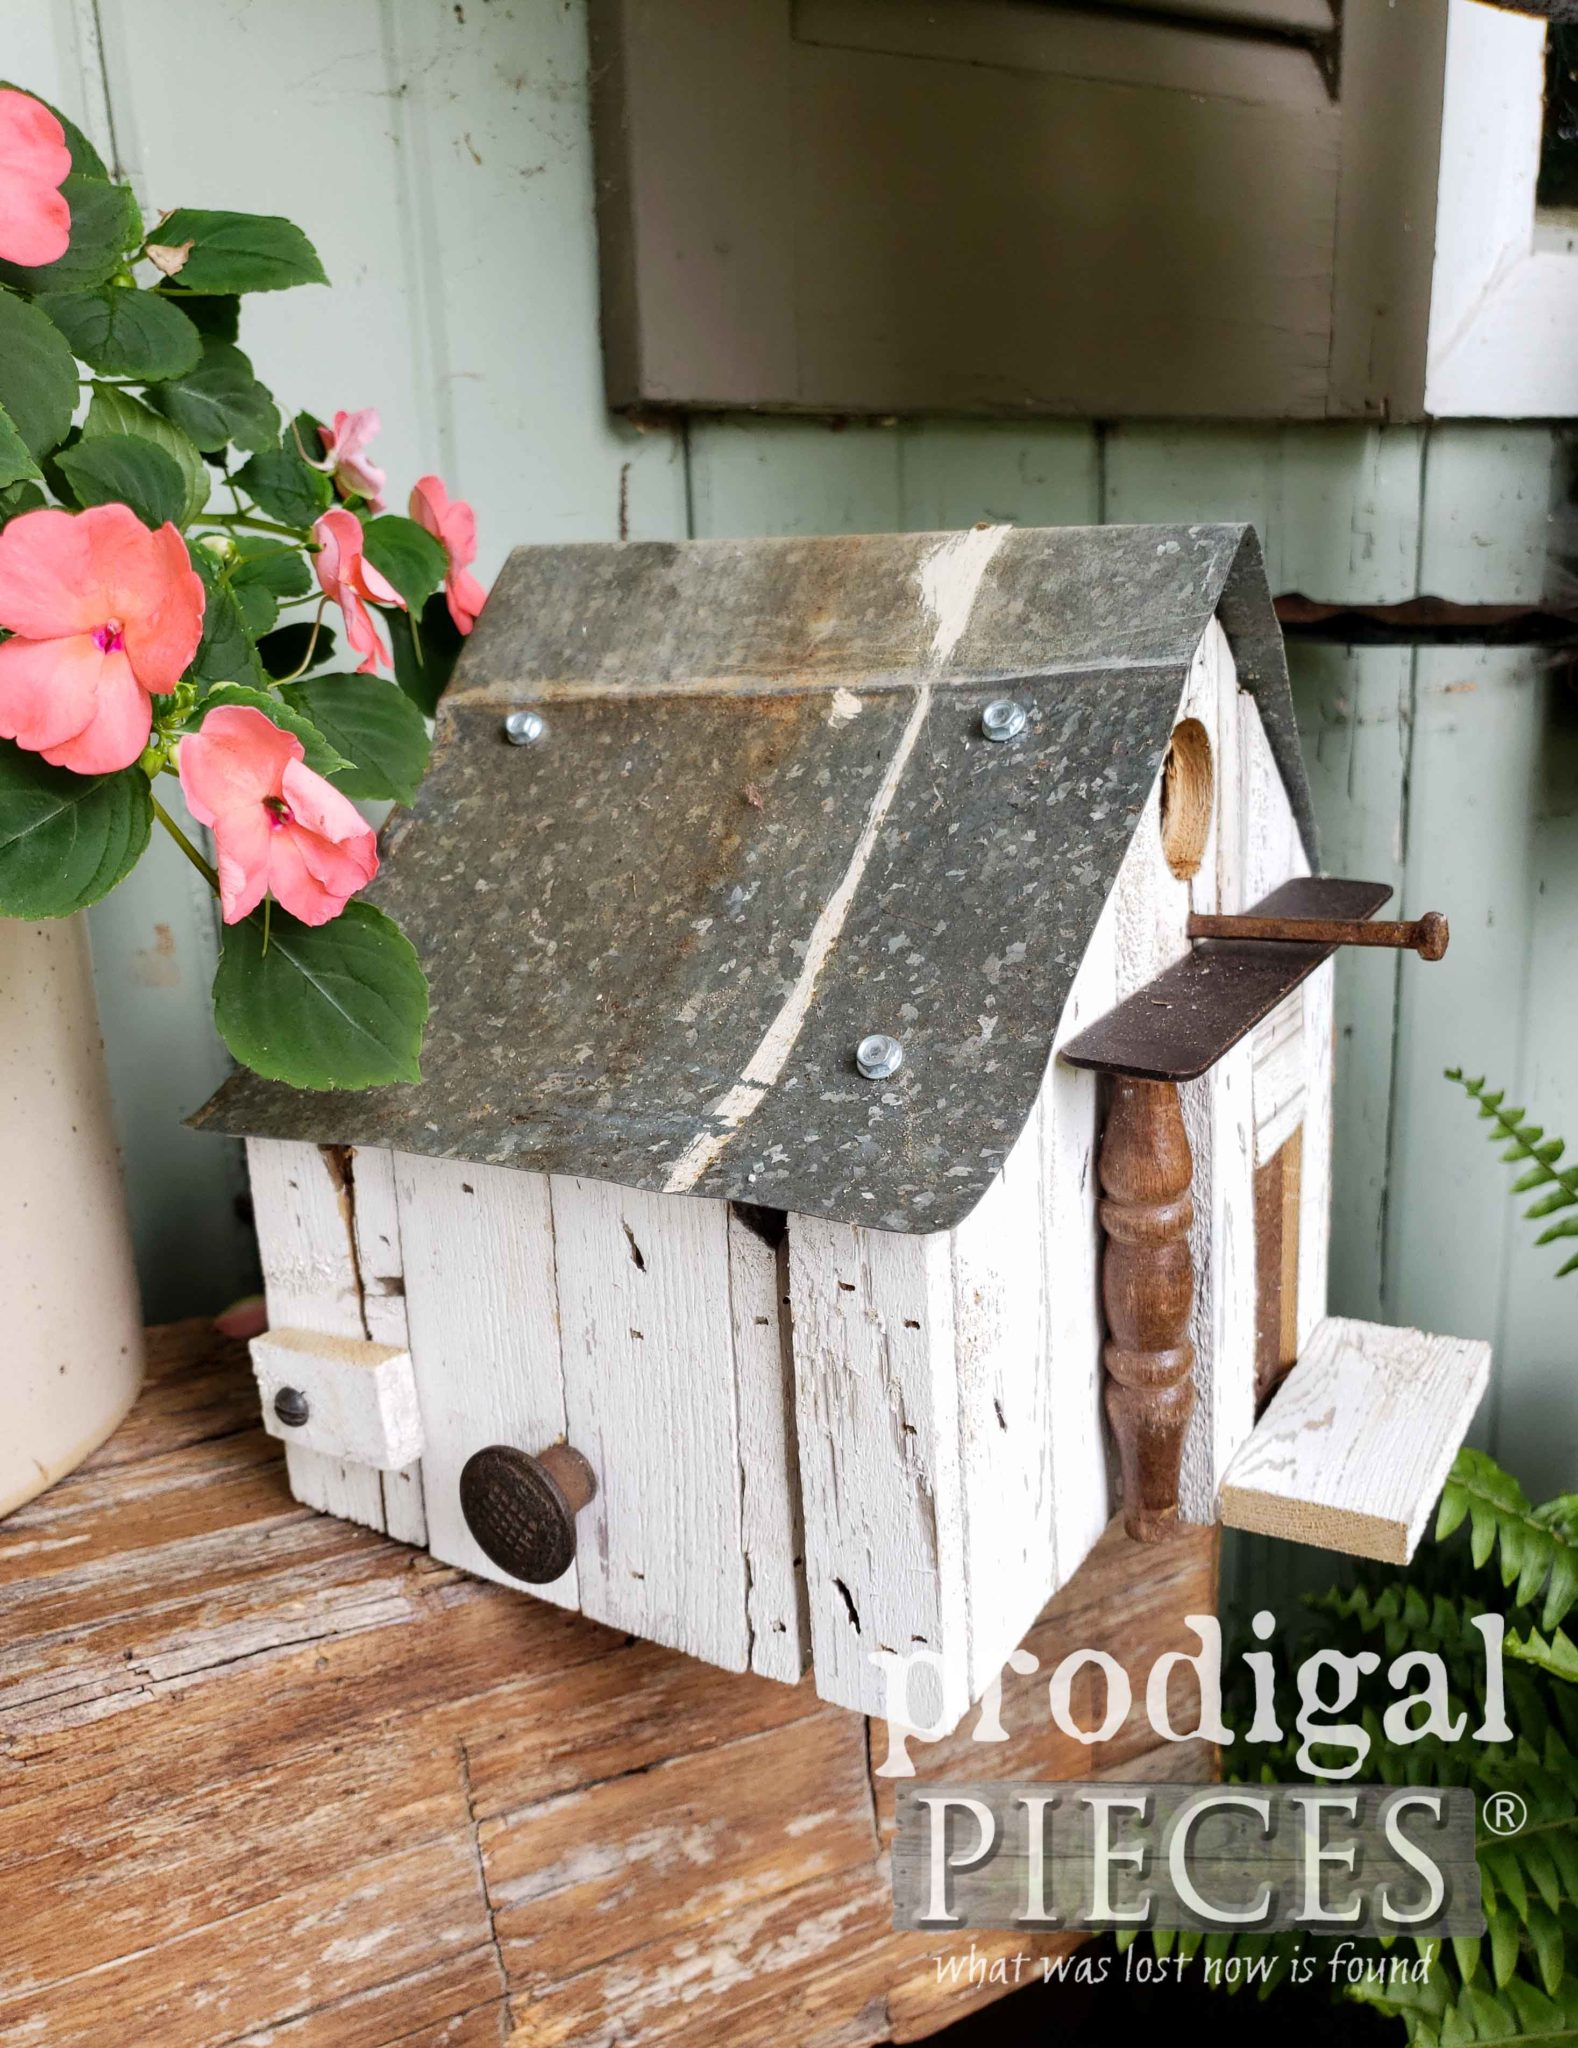 Miniature Farmhouse Birdhouse Created from Salvaged Junk by Larissa of Prodigal Pieces | prodigalpieces.com